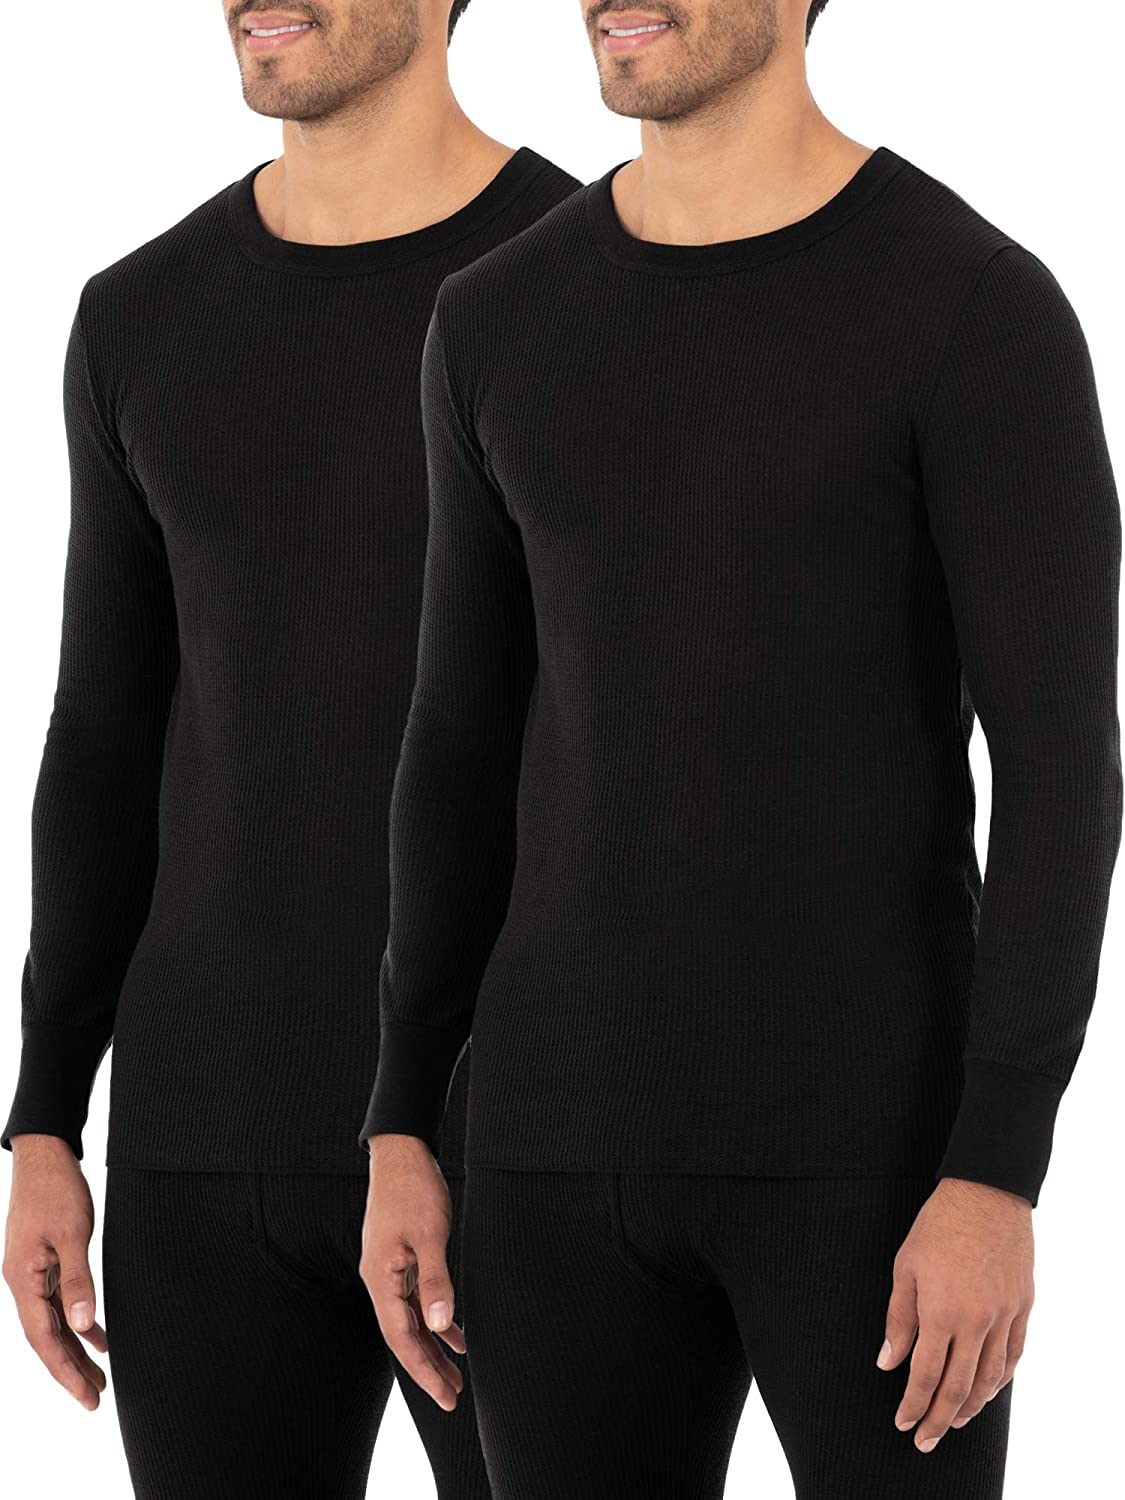 Fruit of the Loom Men's Classic Midweight Waffle Thermal Underwear Crew Top at  Men's Clothing store